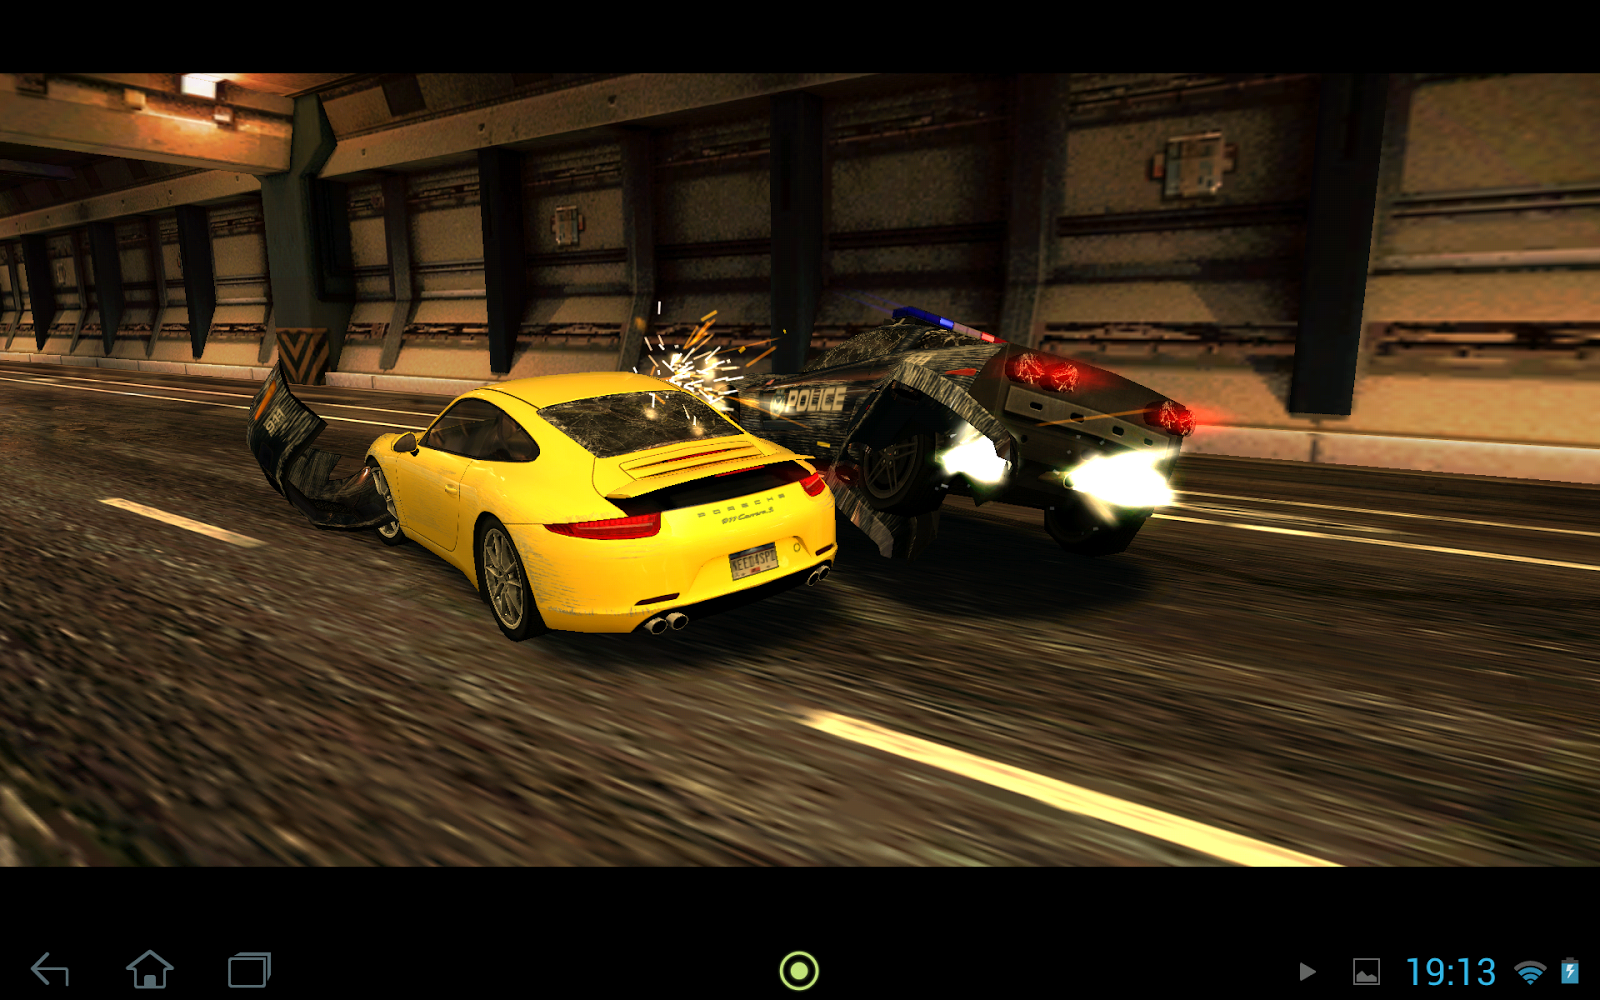 Game nfs most wanted 2012 nfs most wanted 2012 for for Nfs most wanted android